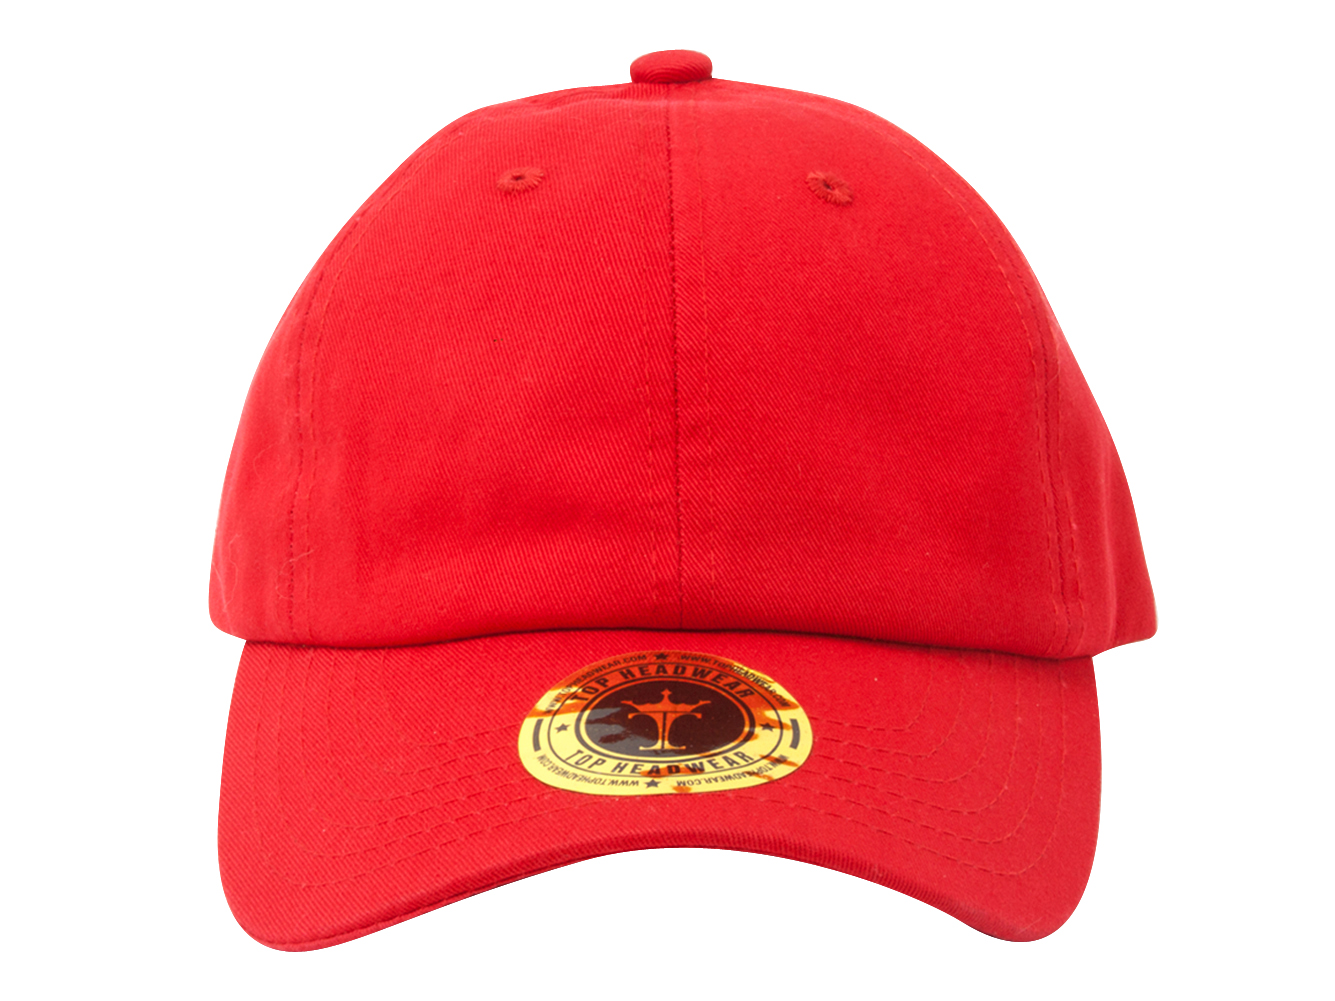 Low-Profile-Dyed-Cotton-Twill-Cap thumbnail 18